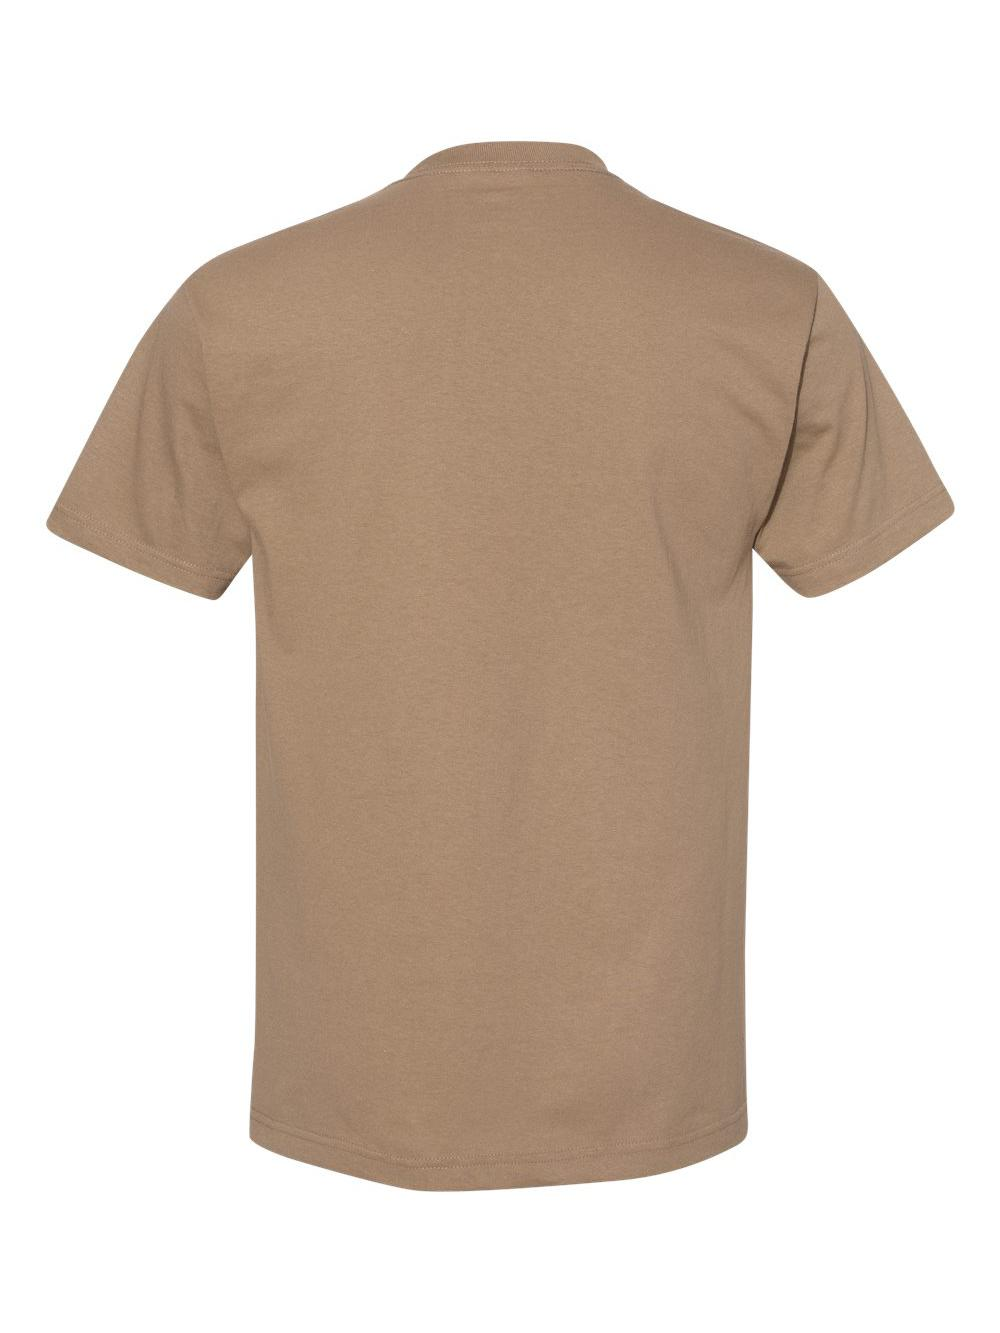 ALSTYLE-Classic-T-Shirt-1301 thumbnail 72